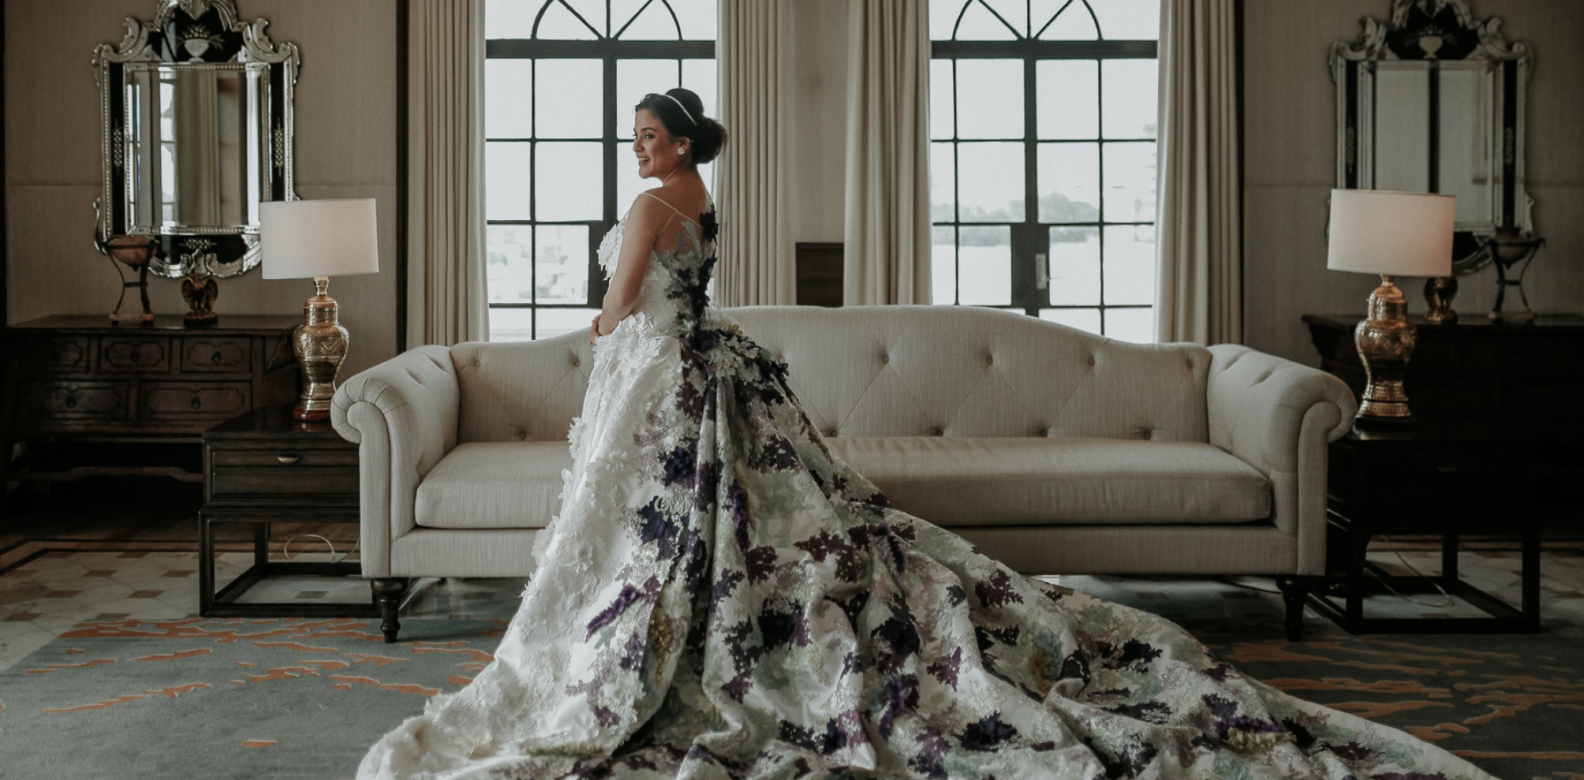 The gorgeous gown designed by Ino Sotto